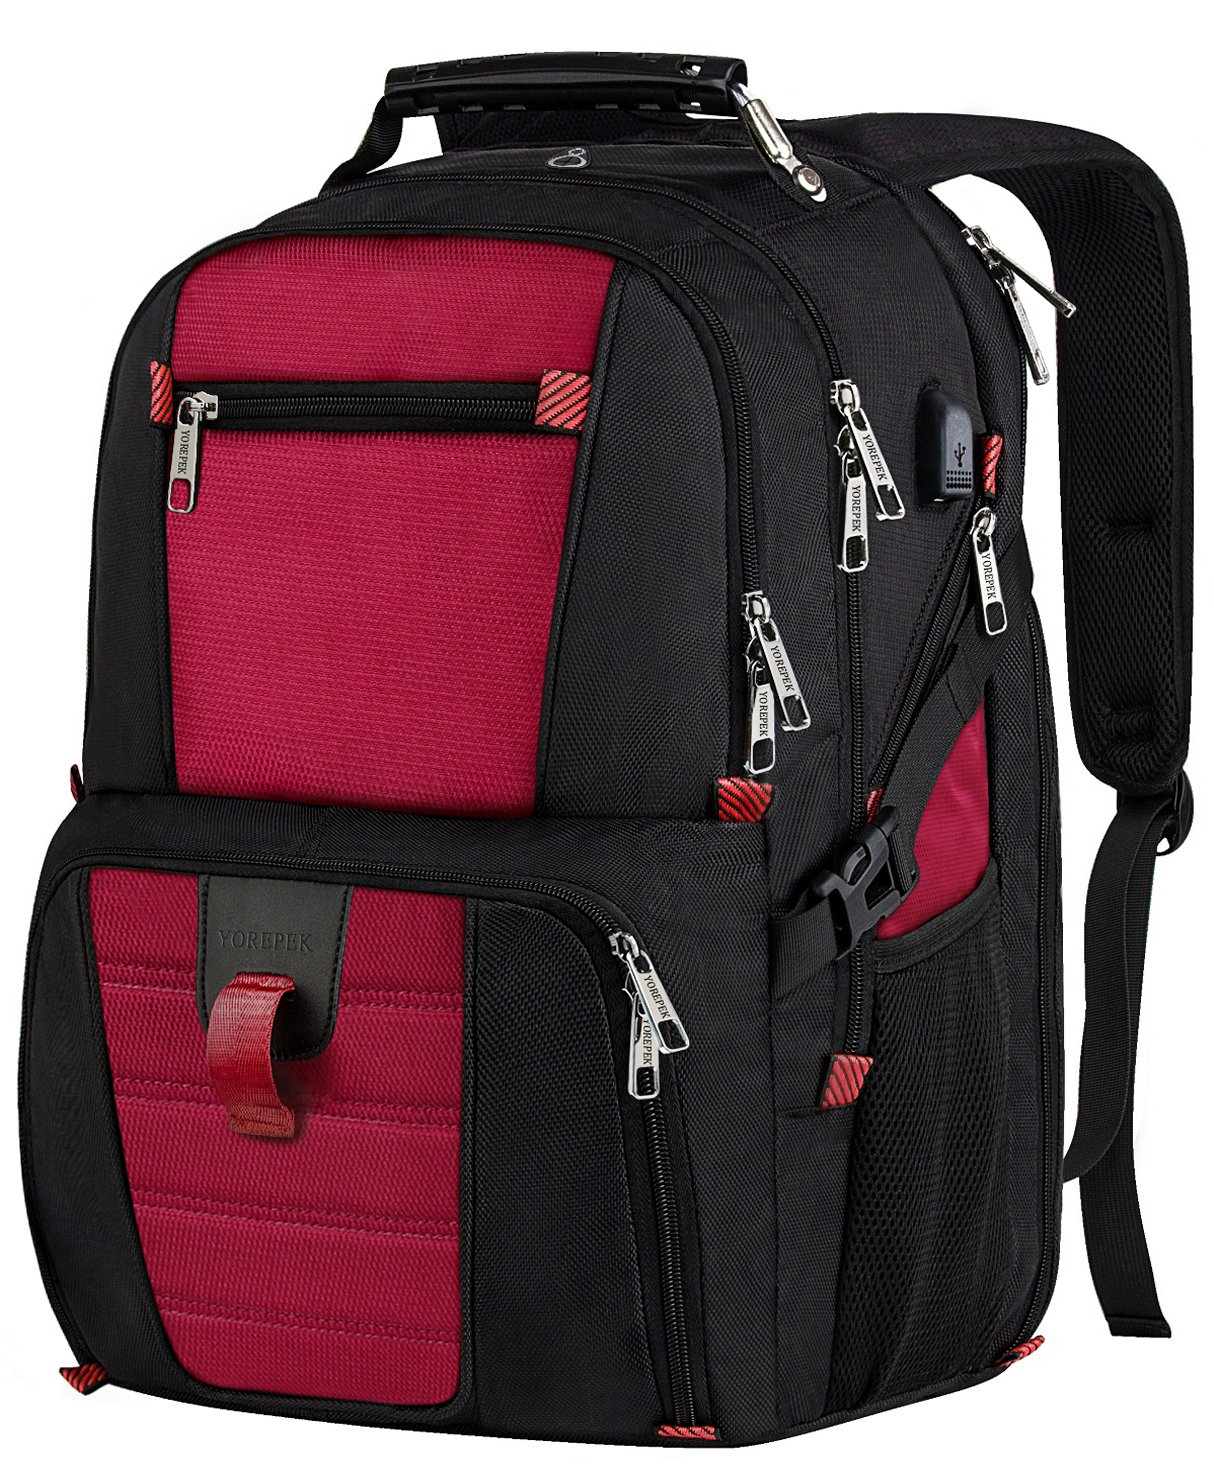 Laptop Travel Backpack, Large Capacity Computer Back Pack with Lots of Pockets,Water Repellent College Shoulder Bookbag with Usb Charging Port and Headphone Hole Fits 17 Inch Laptop,Macbook in Red